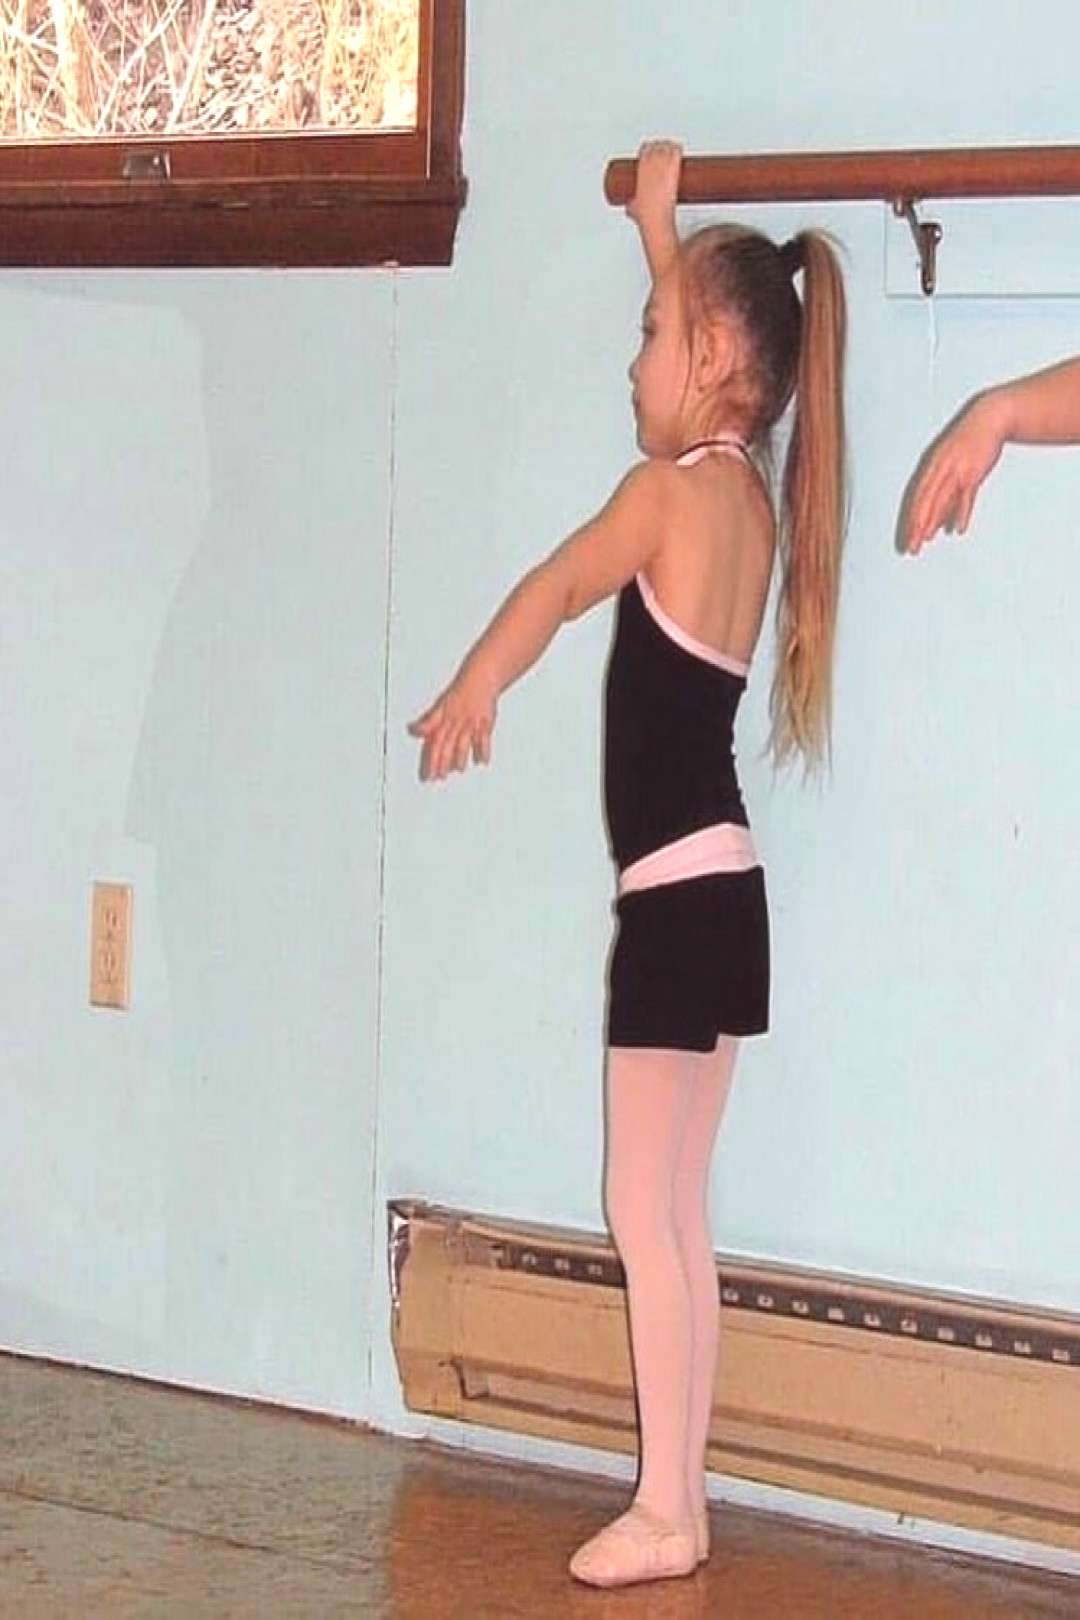 Dance Moms on June 01 2020 and 1 person standing